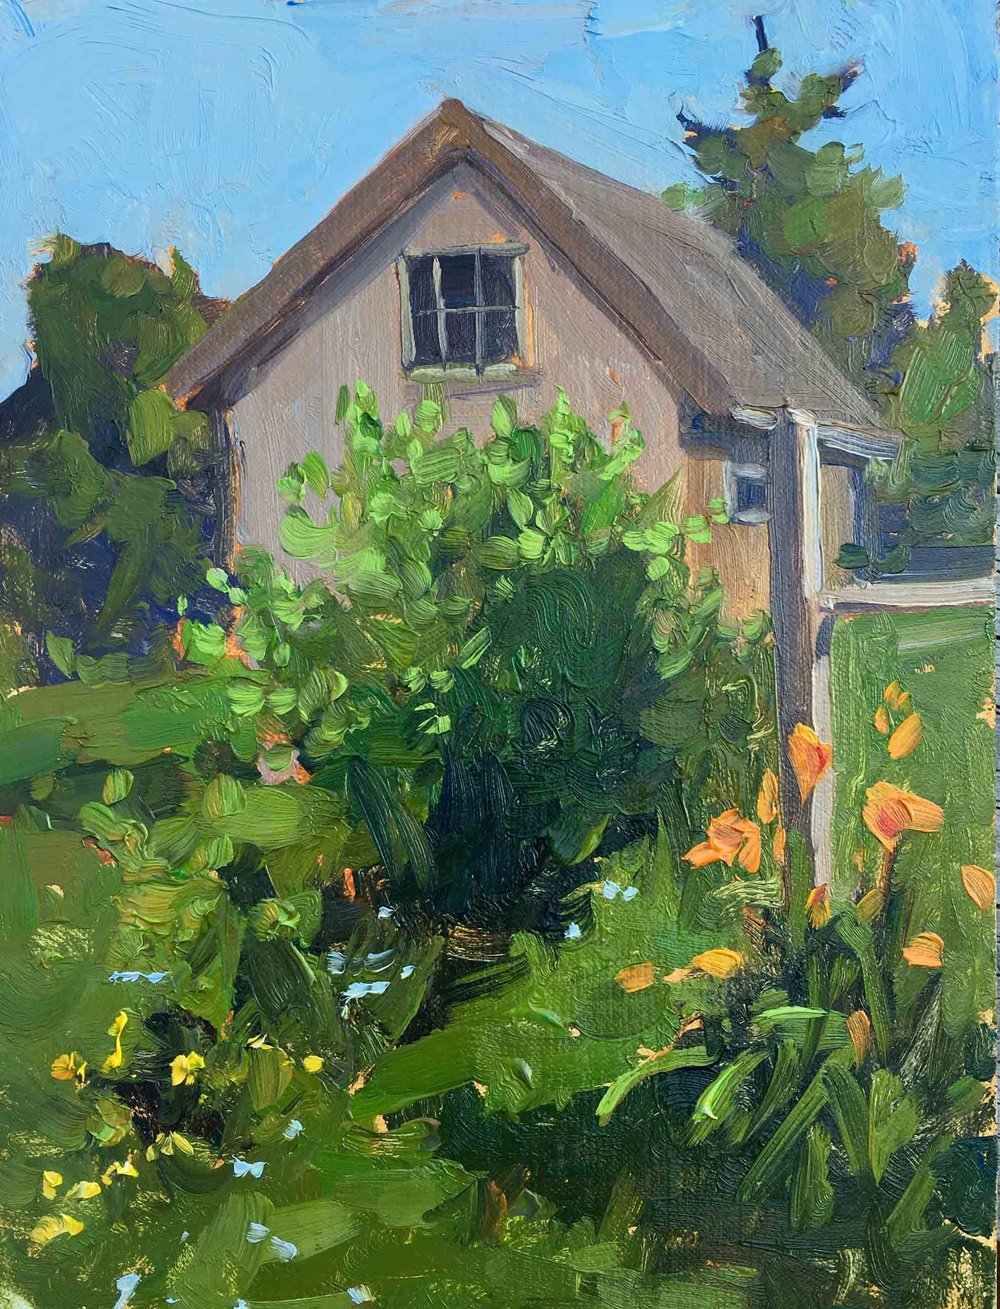 Lilies-and-Shed_web.jpg